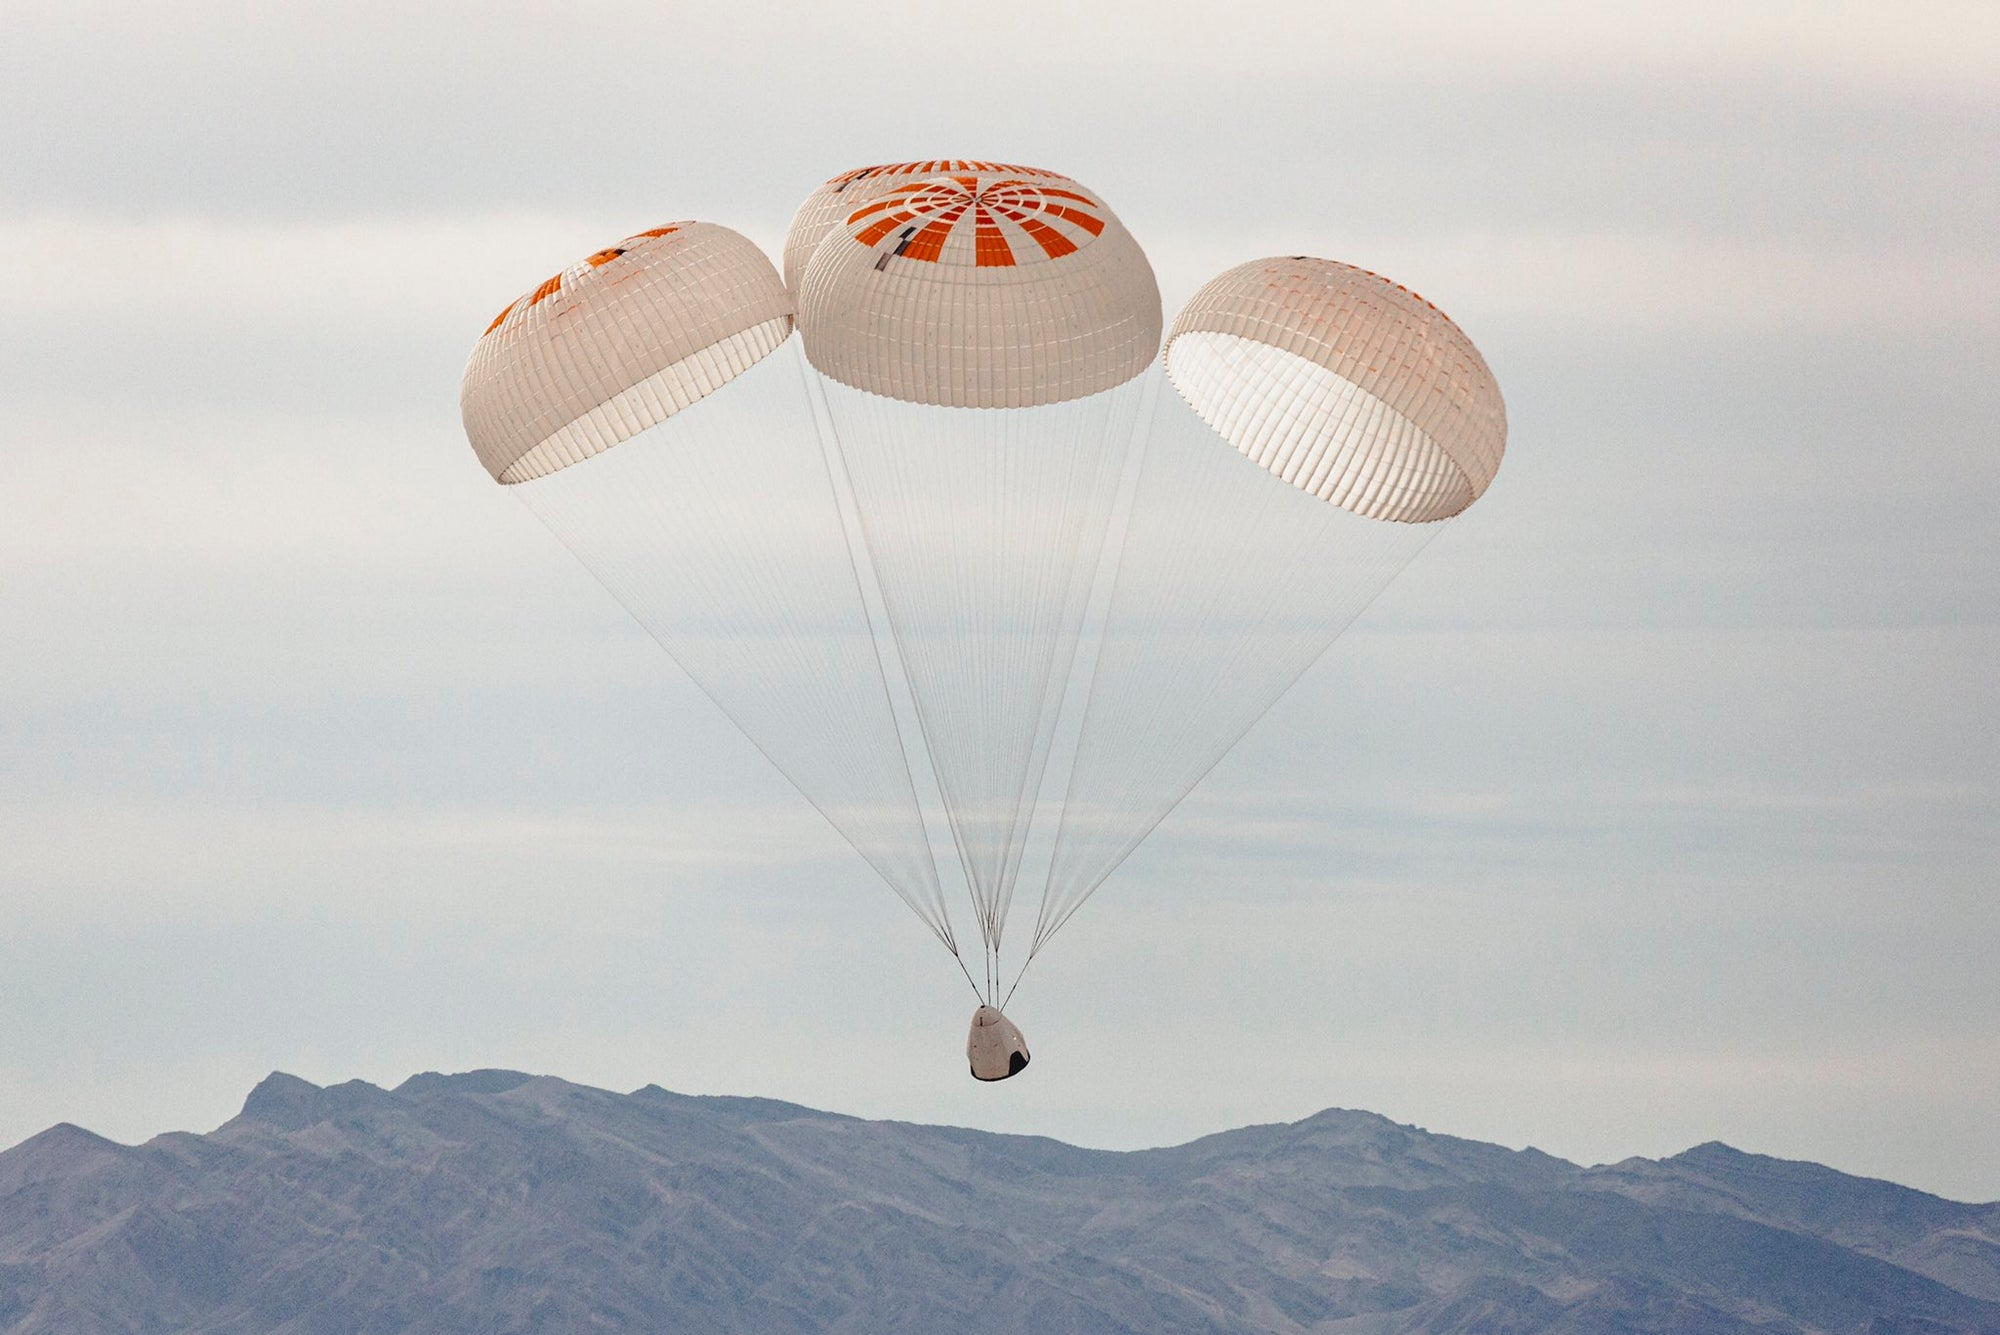 SpaceX will perform final Crew Dragon parachute tests with a C-130 cargo plane